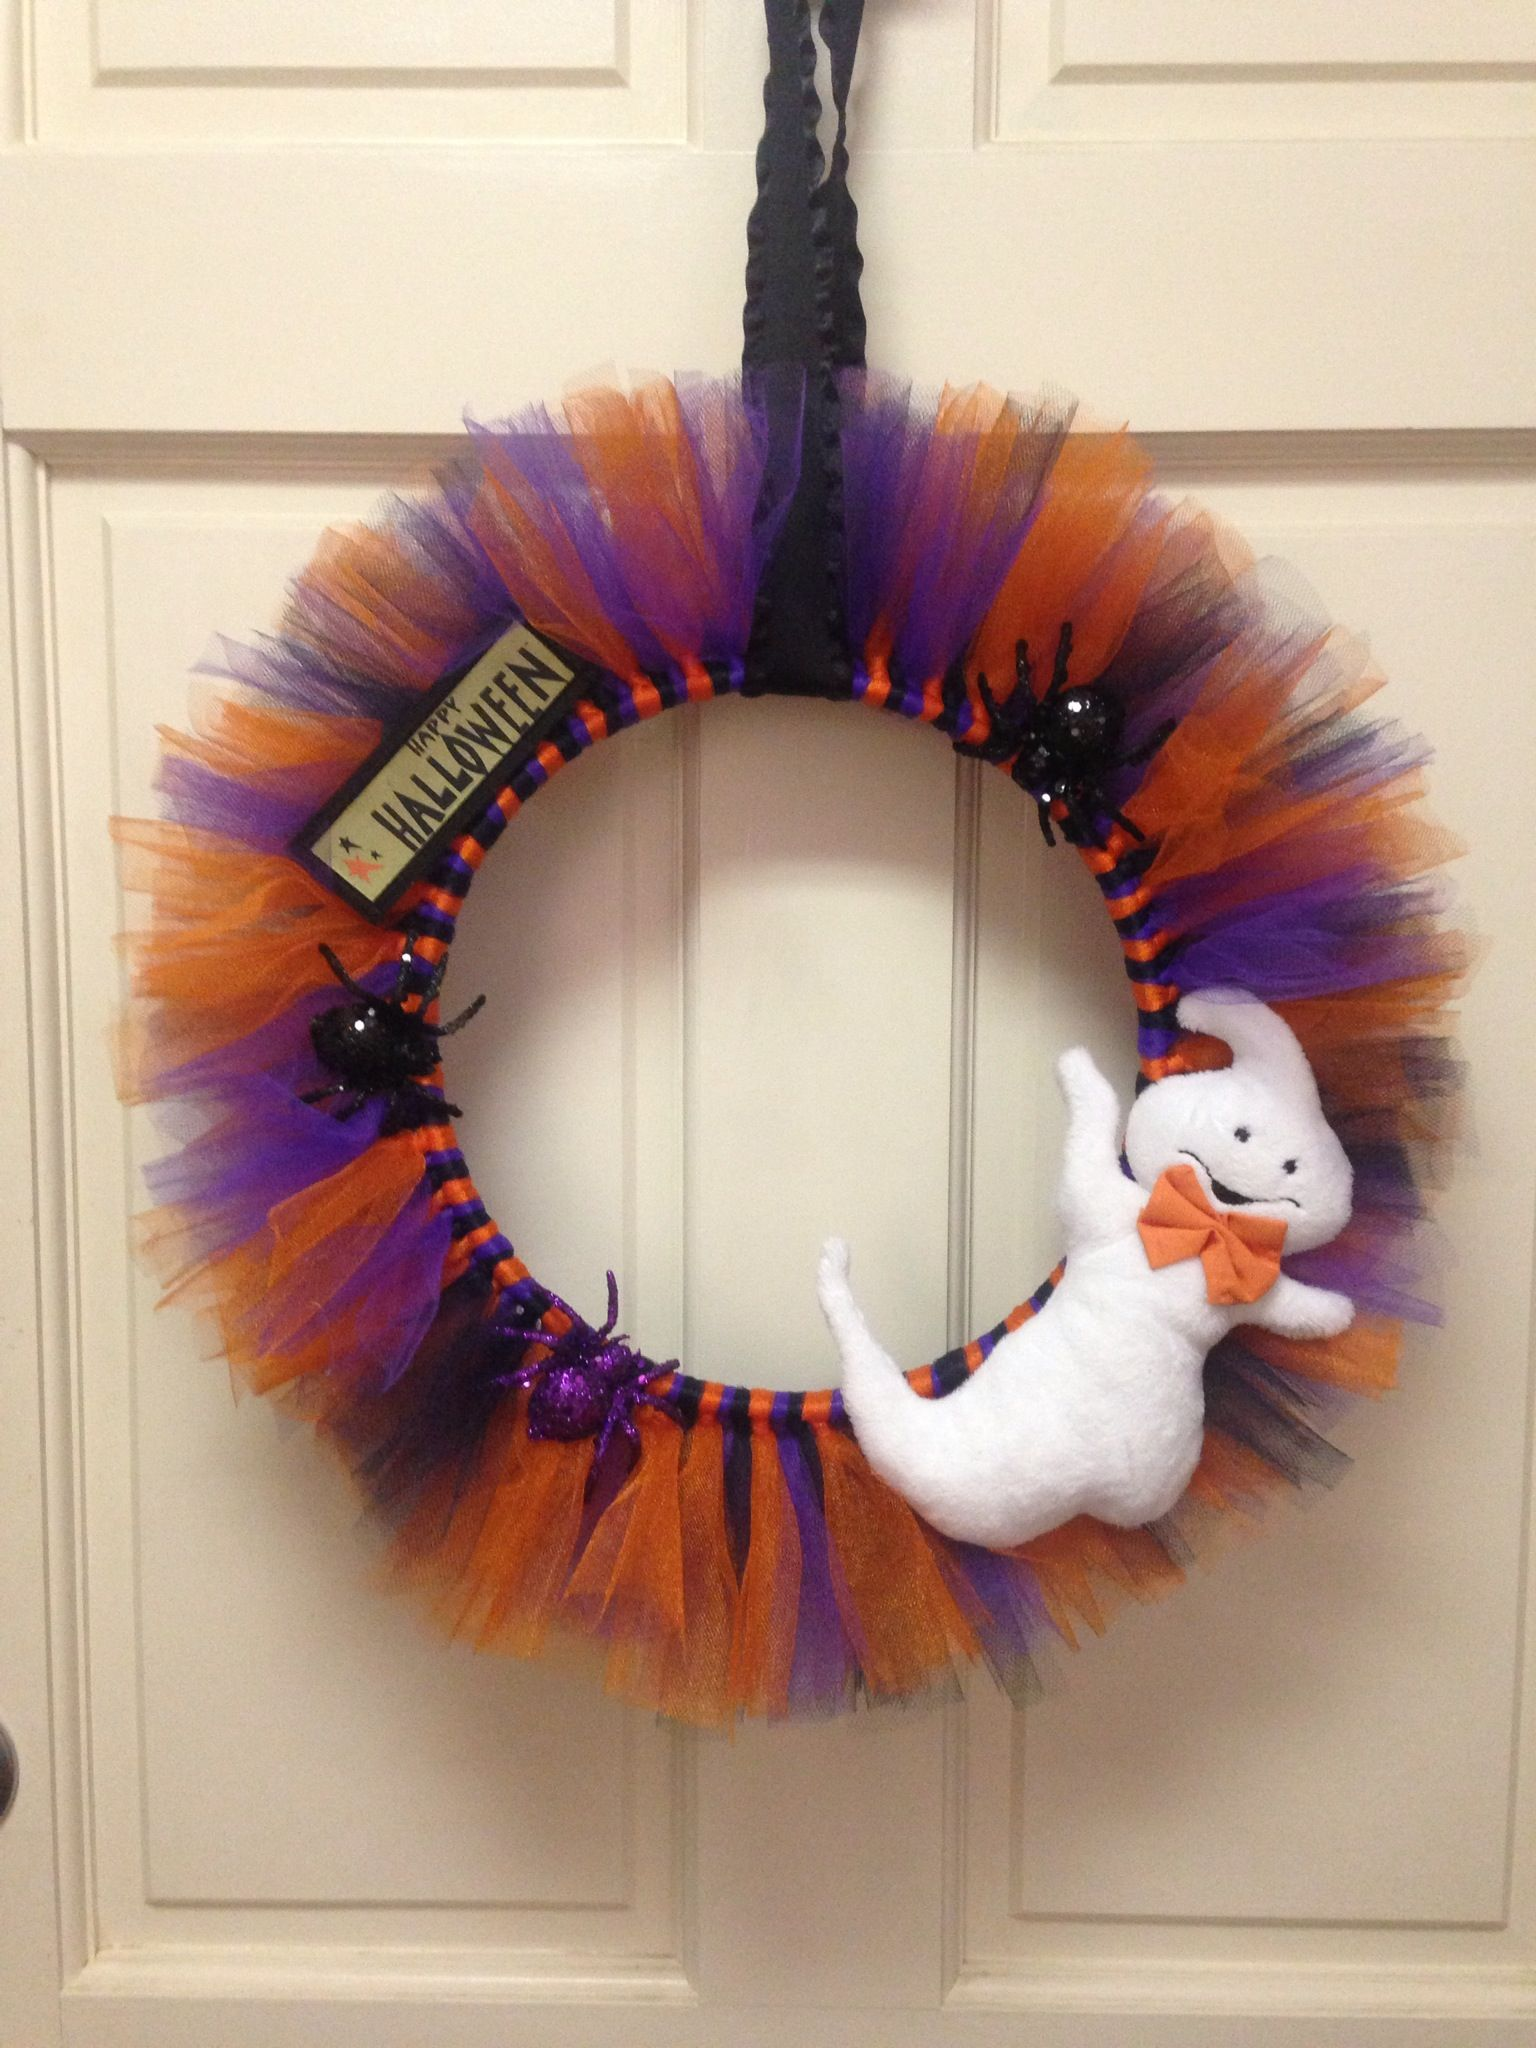 Super Cute Tulle Wreath You Can Make One For Any Holiday